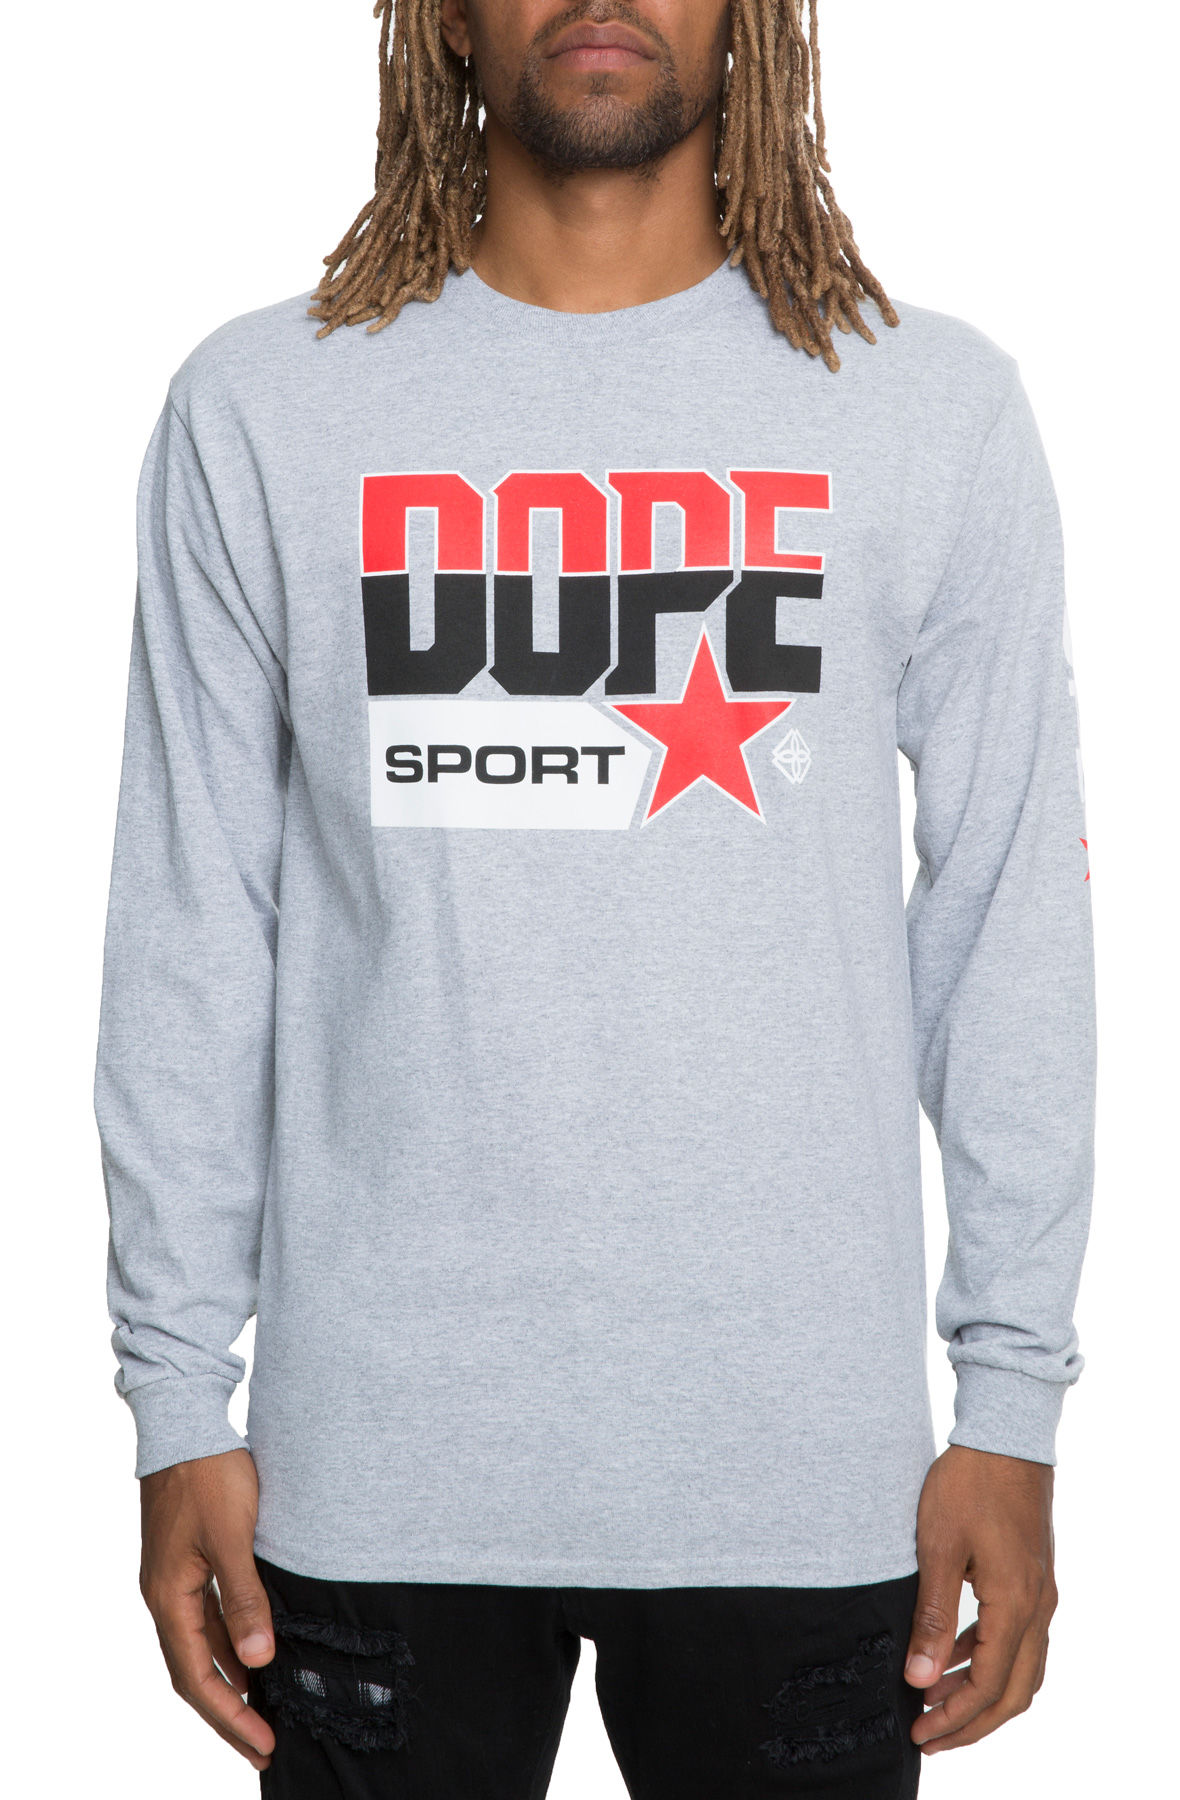 the quarterfinal long sleeve in grey